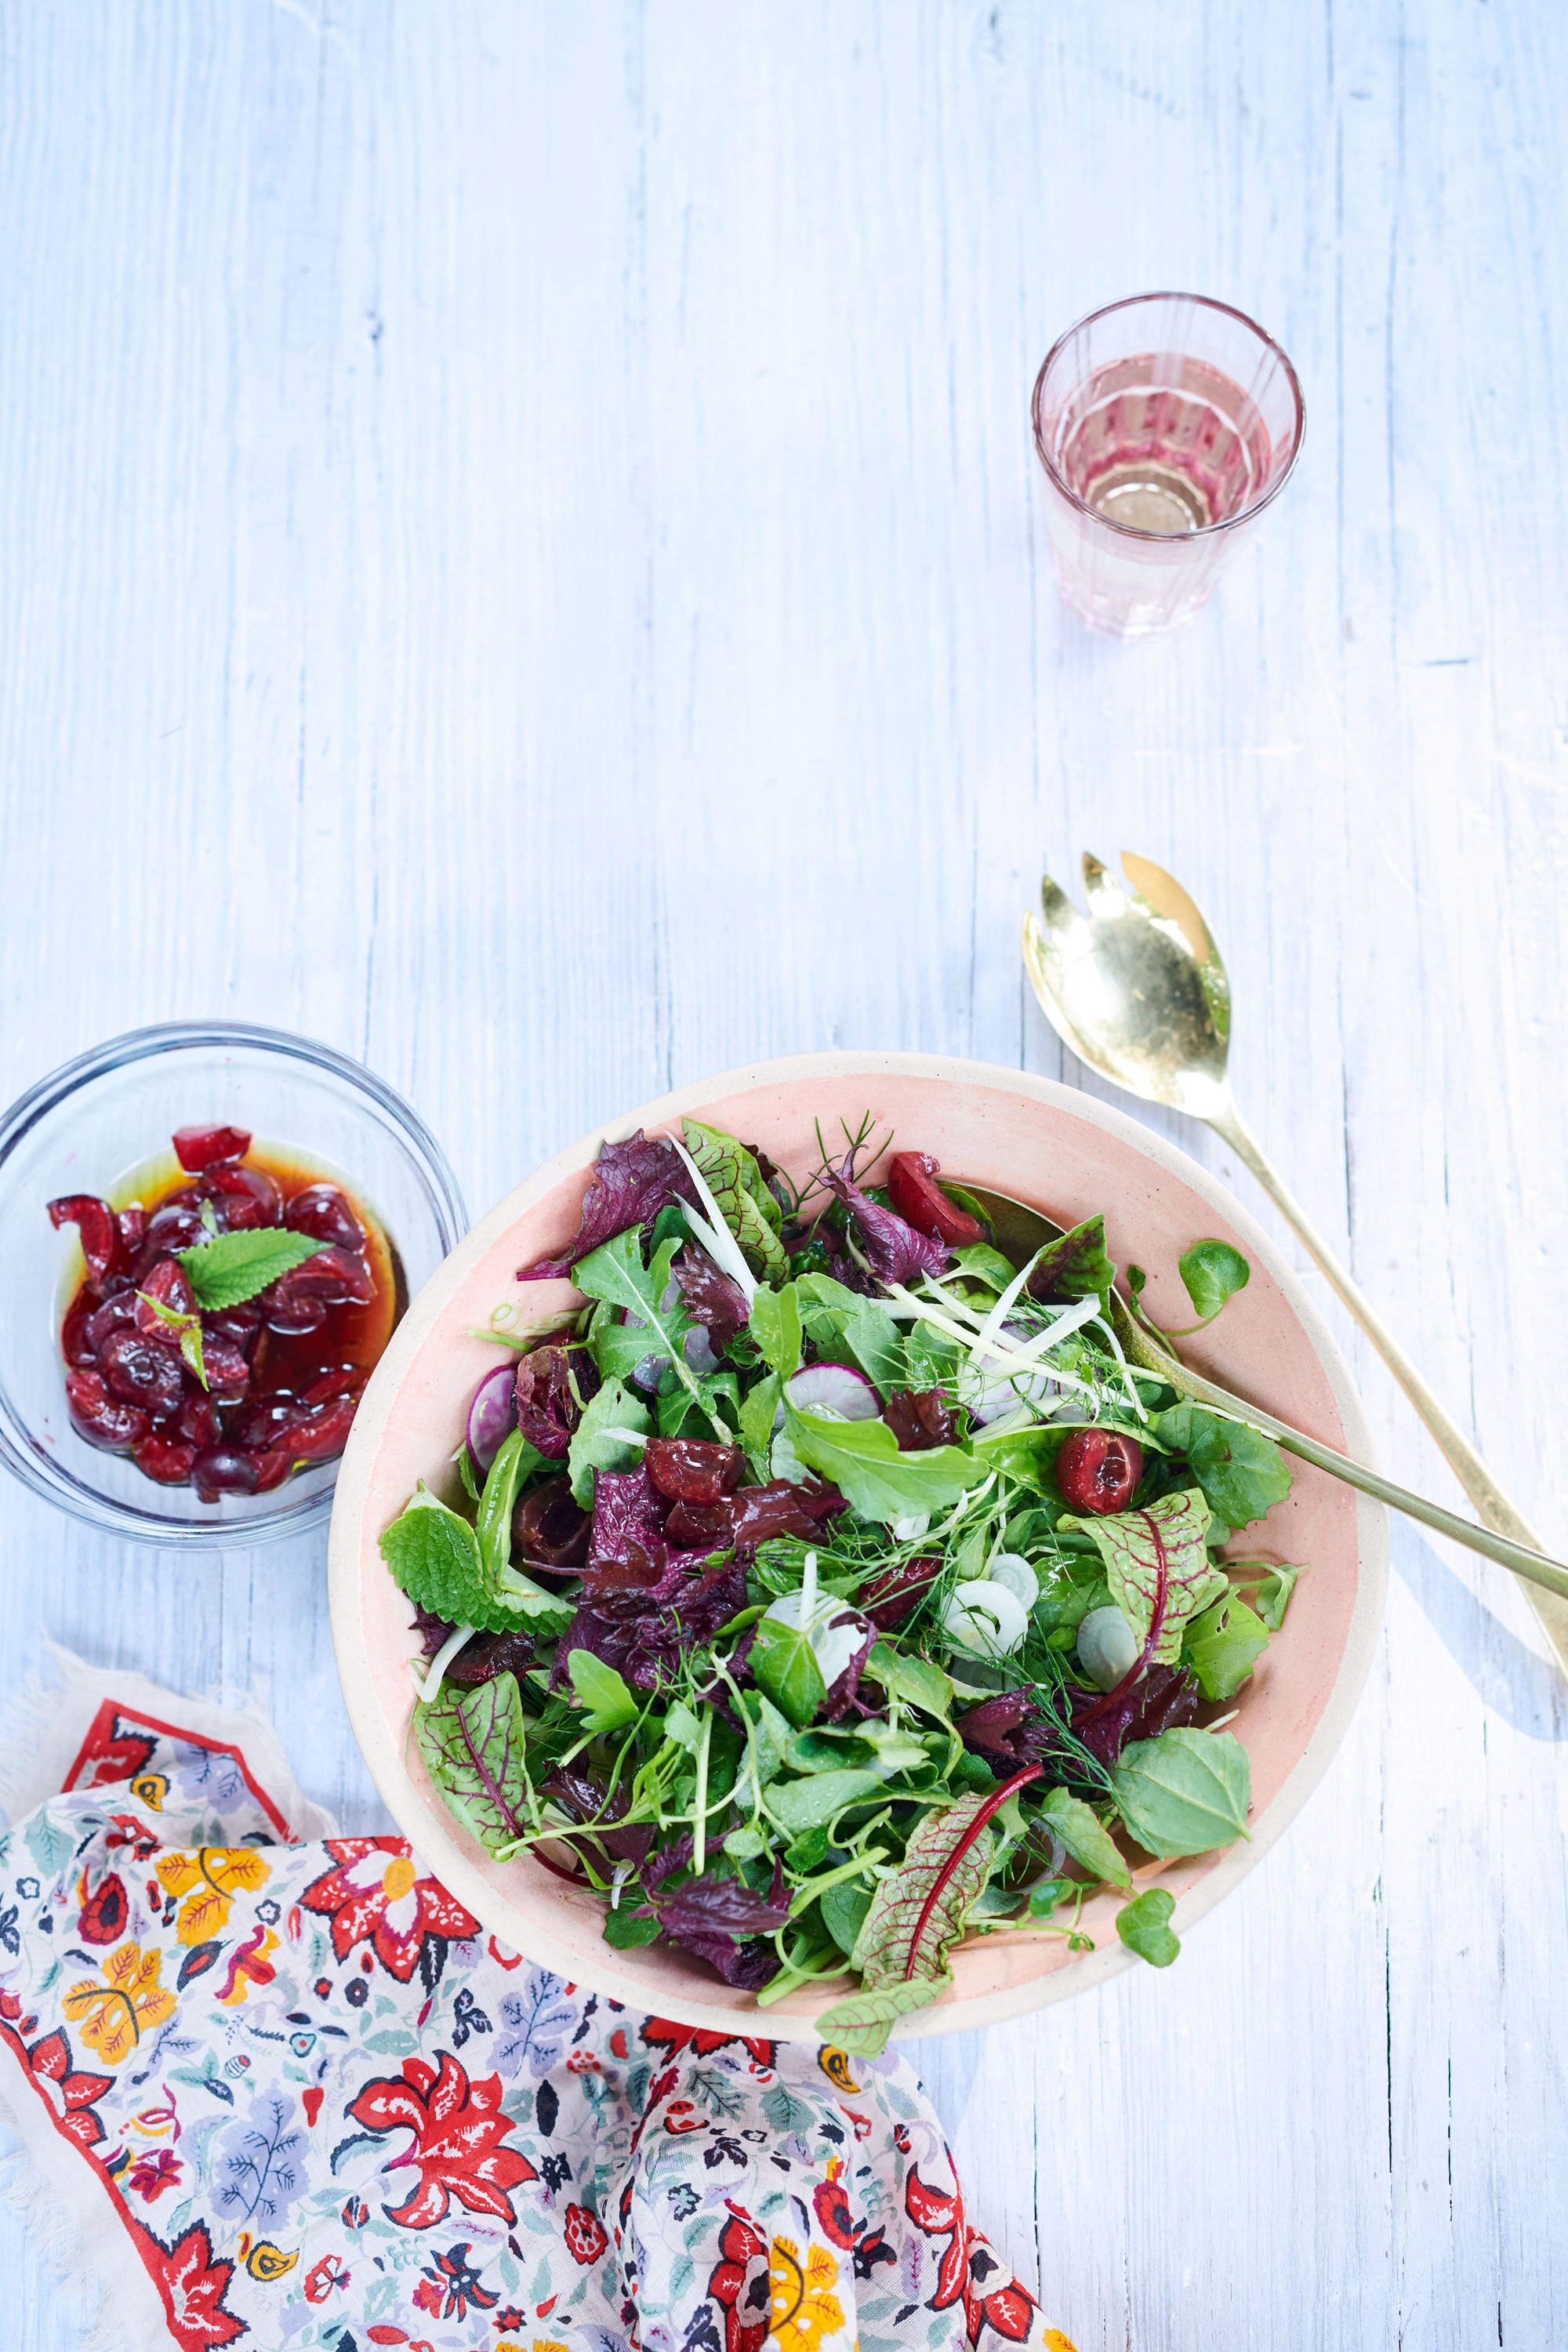 garden salad with herbs and sour-cherry dressing